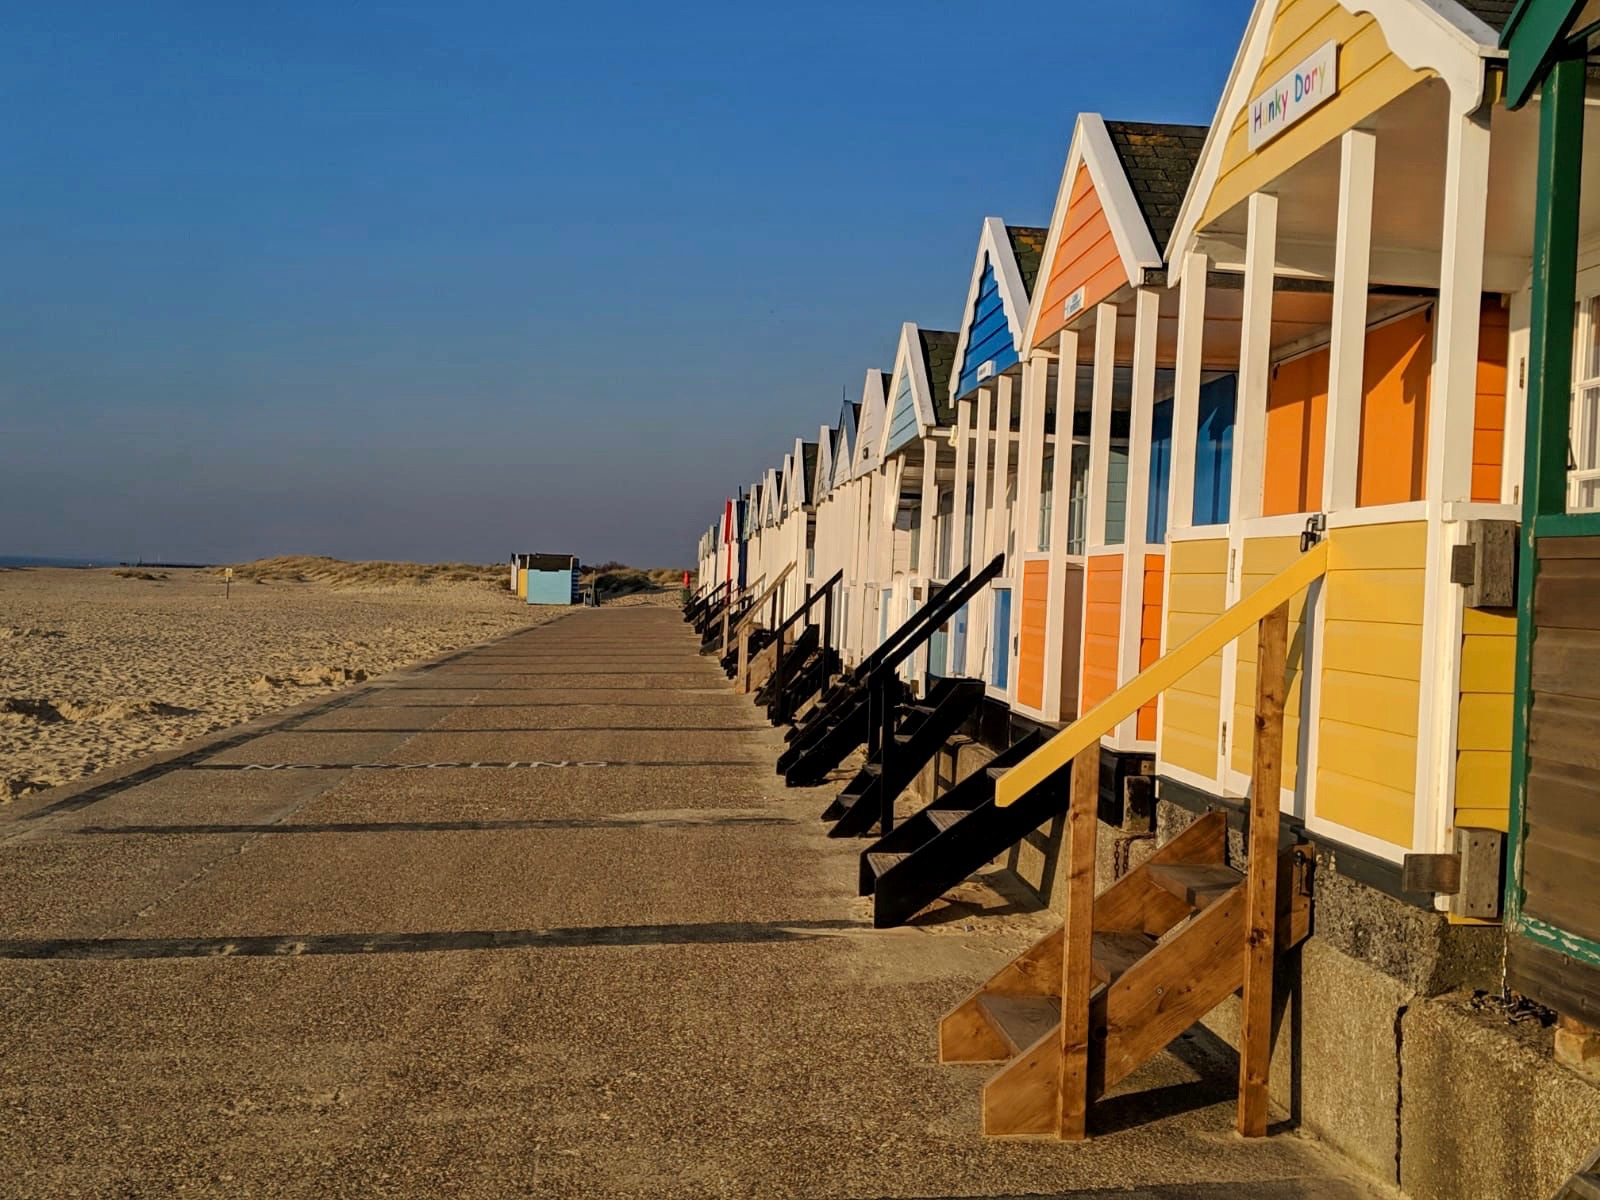 Things to Do in Southwold: A Perfect Weekend From Pier to Pubs